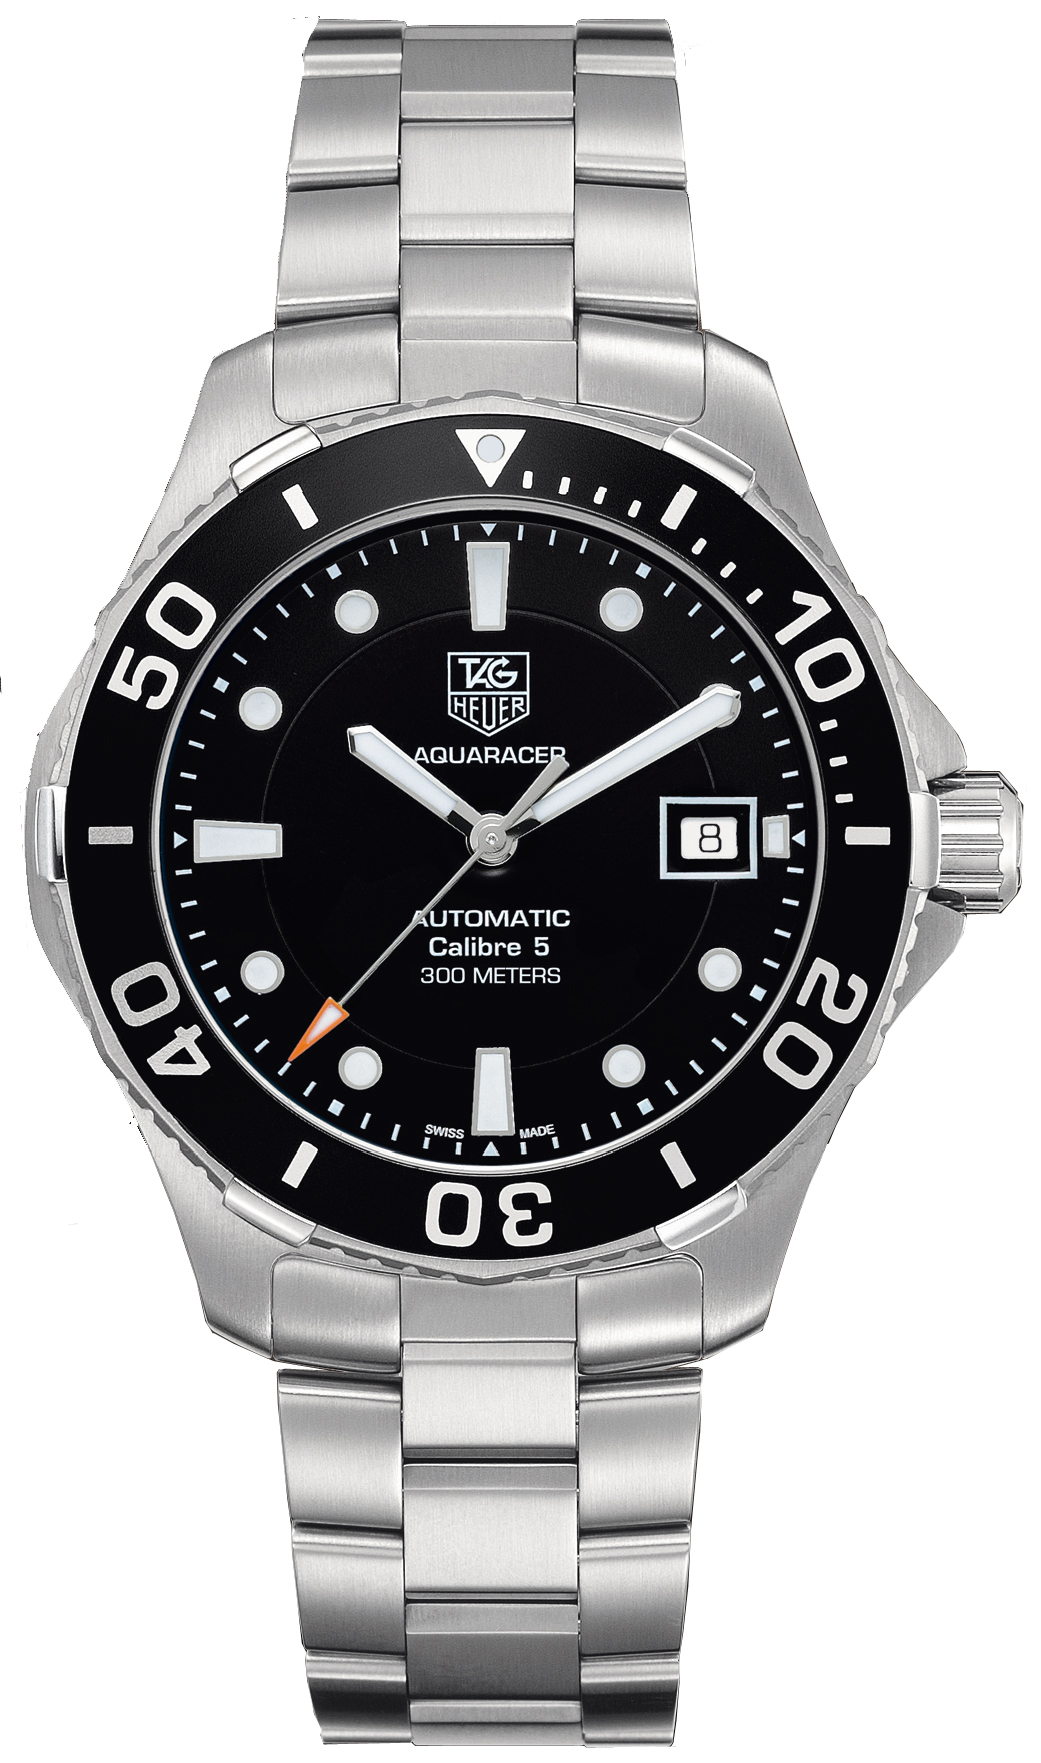 Wan2110 ba0822 tag heuer aquaracer cal 5 300m mens automatic watch for Tag heuer automatic